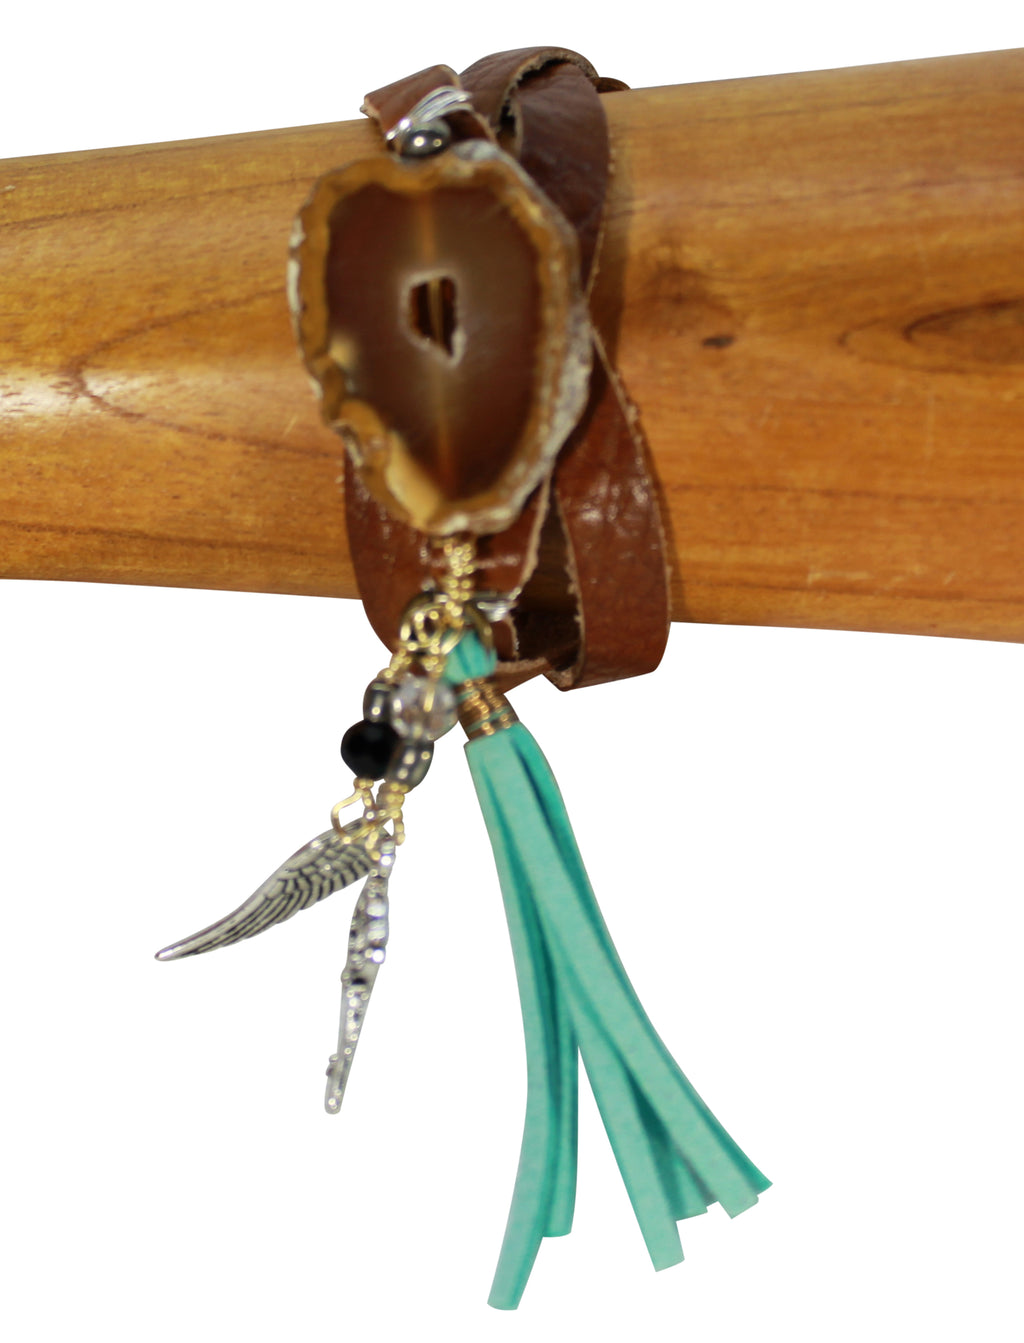 Vegetable tanned leather bracelet, natural stone, tassel on charm bracelet, leather jewelry cuff